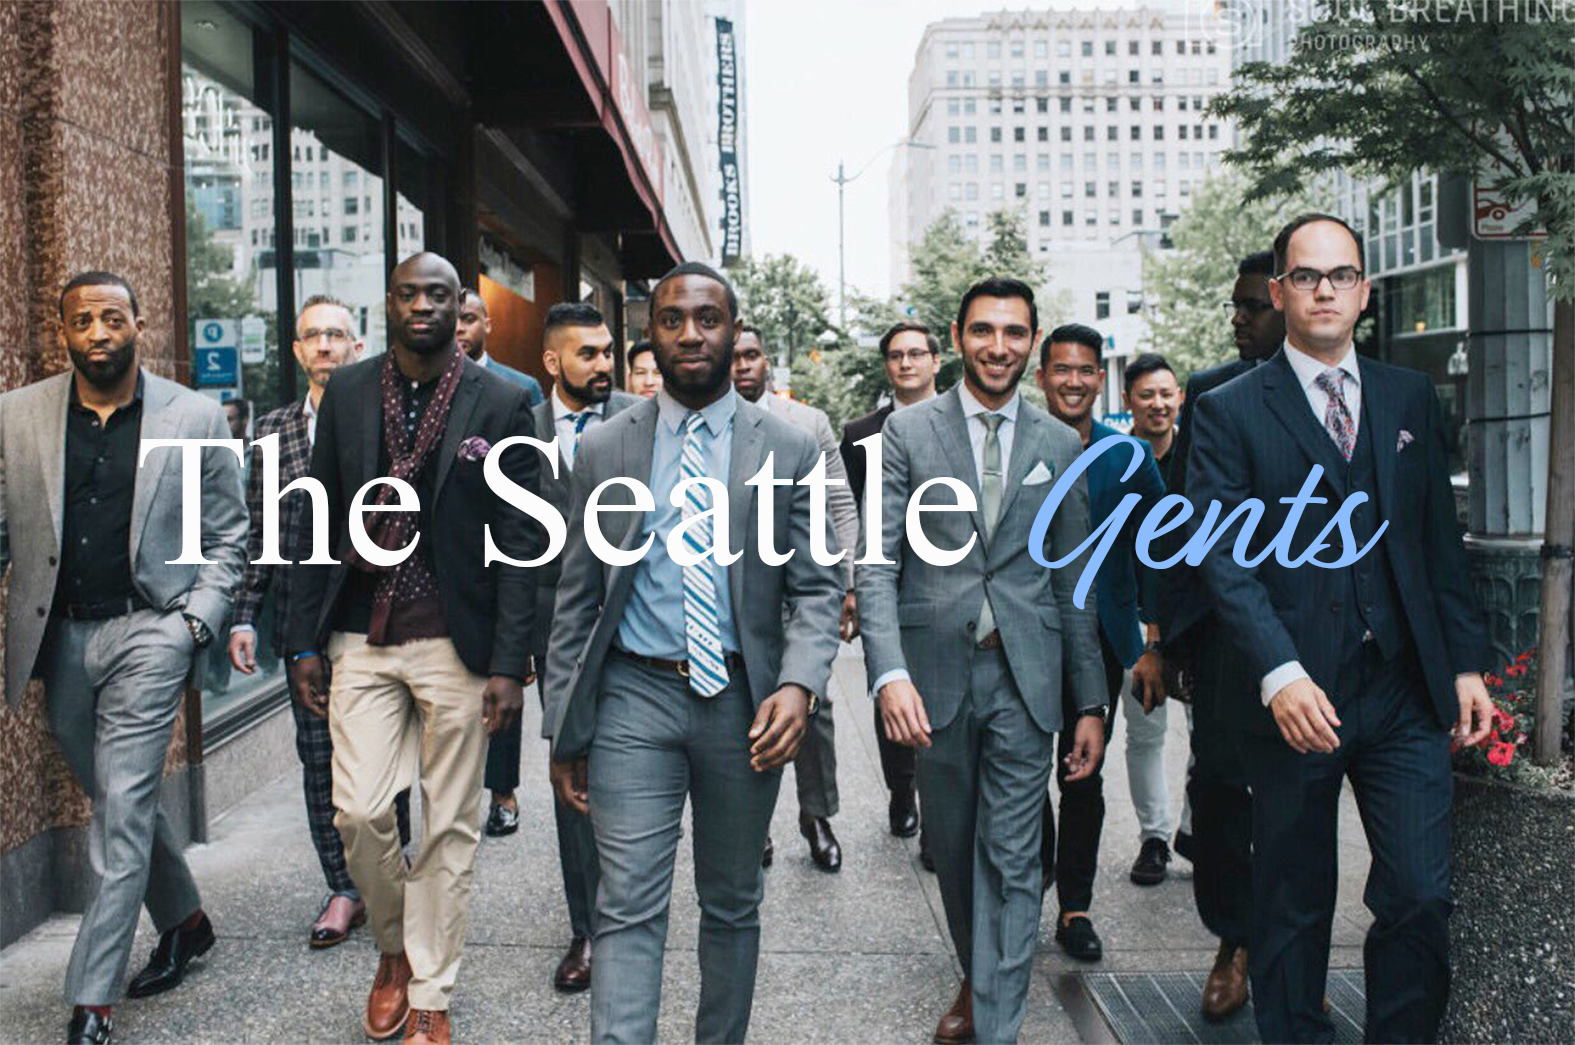 The Seattle Gents - A group of men with style. Partnerships, promotions, and reviews. Follow them on FaceBook @SeattleGents.